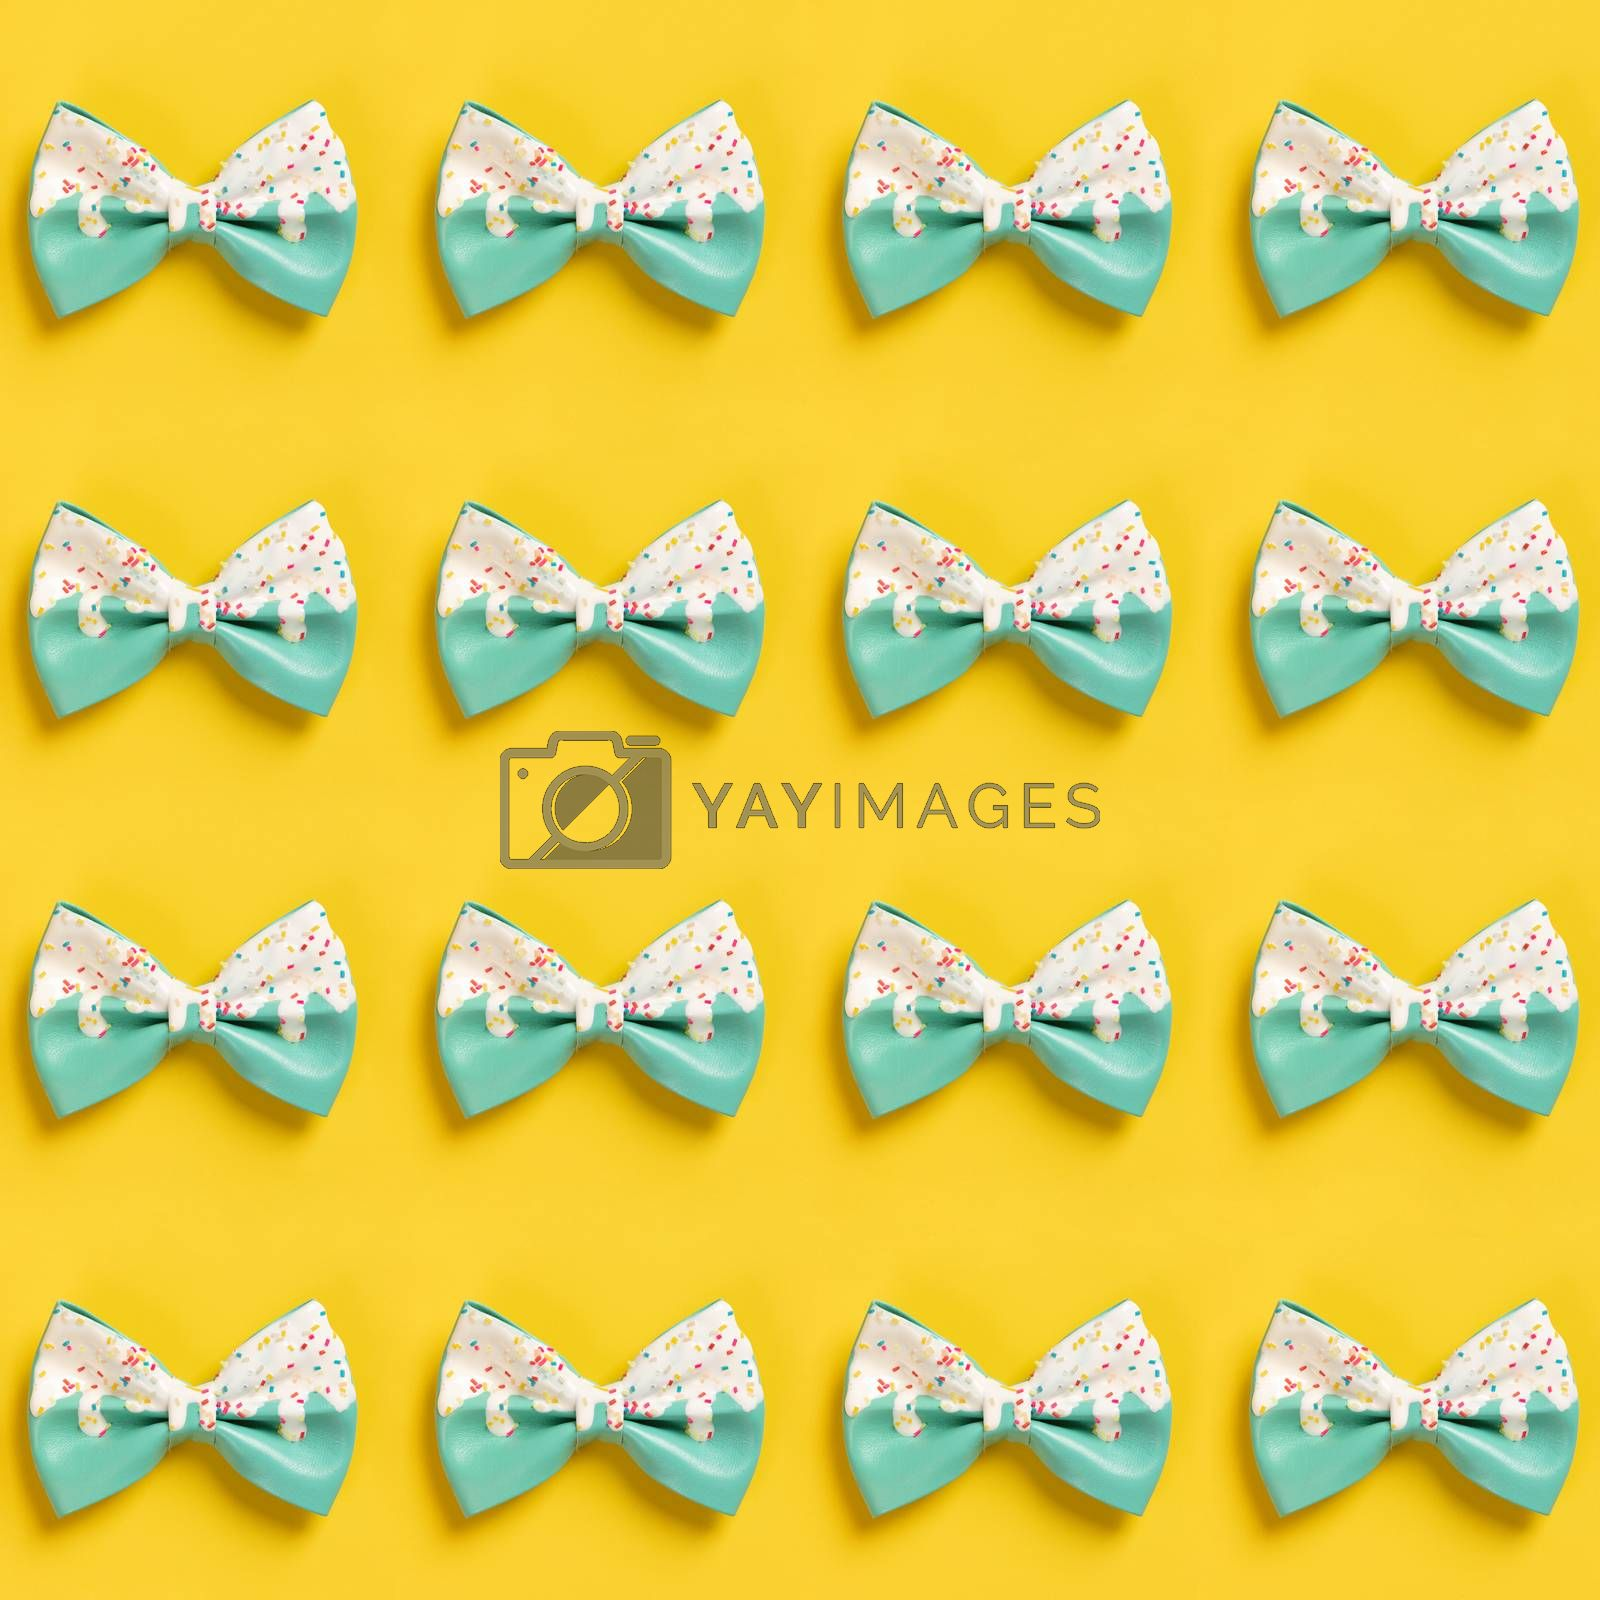 Cute hair bow pattern on bright background, flat lay by klenova